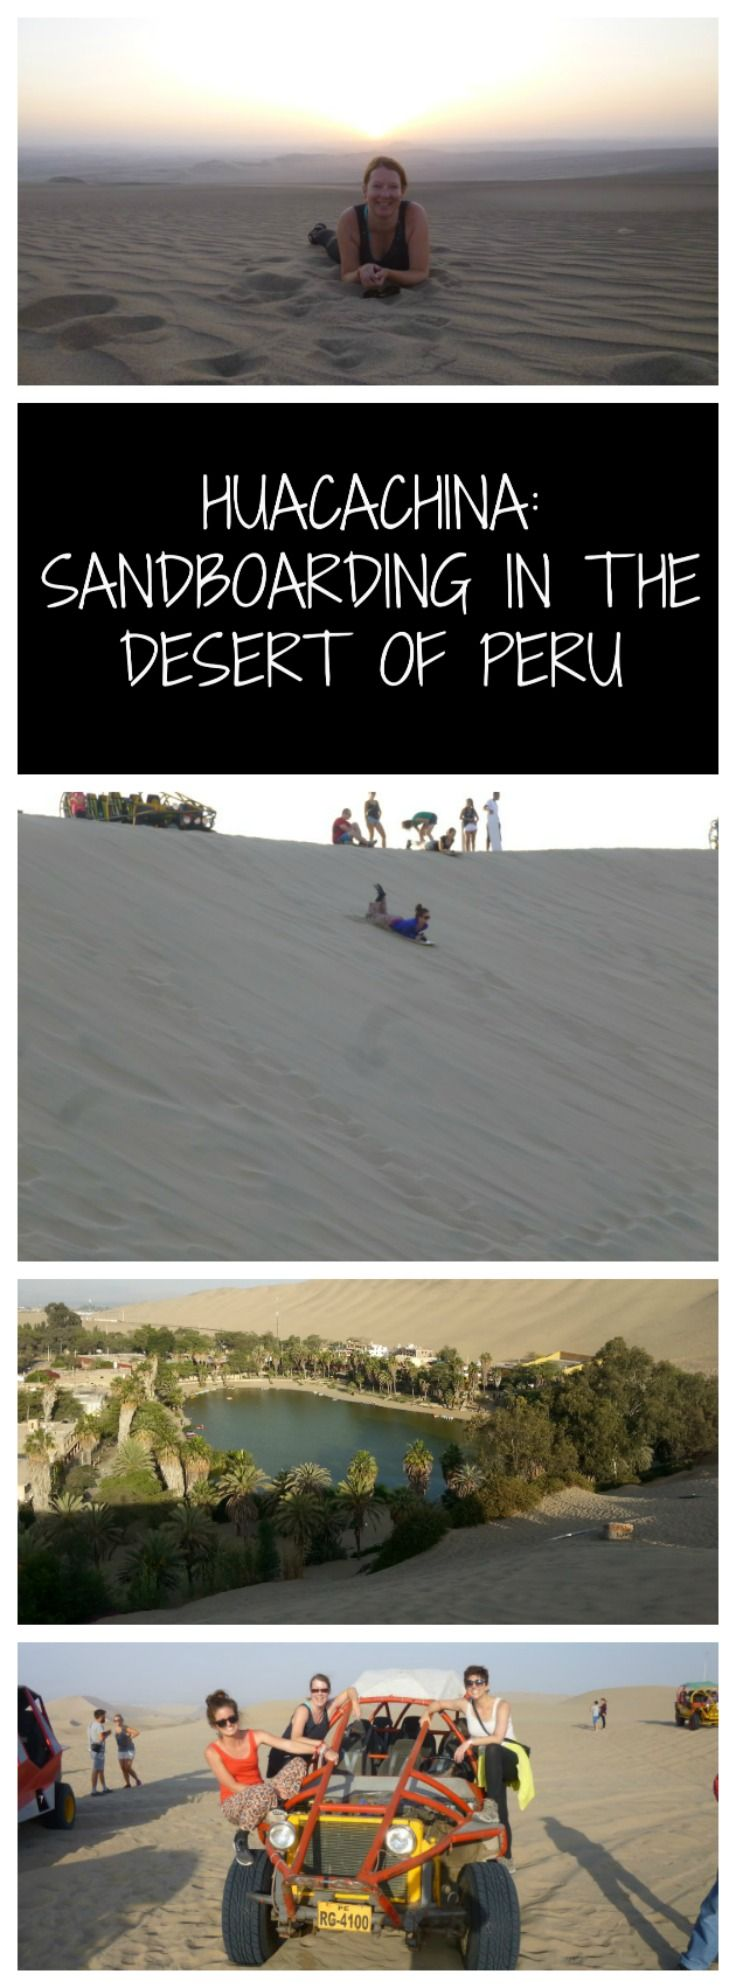 Huacachina - Sandboarding in the Desert of Peru. Huacachina is an oasis in the Peruvian Desert, come here for sandboarding and a ride in a dune buggy! Close to Lima, yet a world away, come for a wild ride!